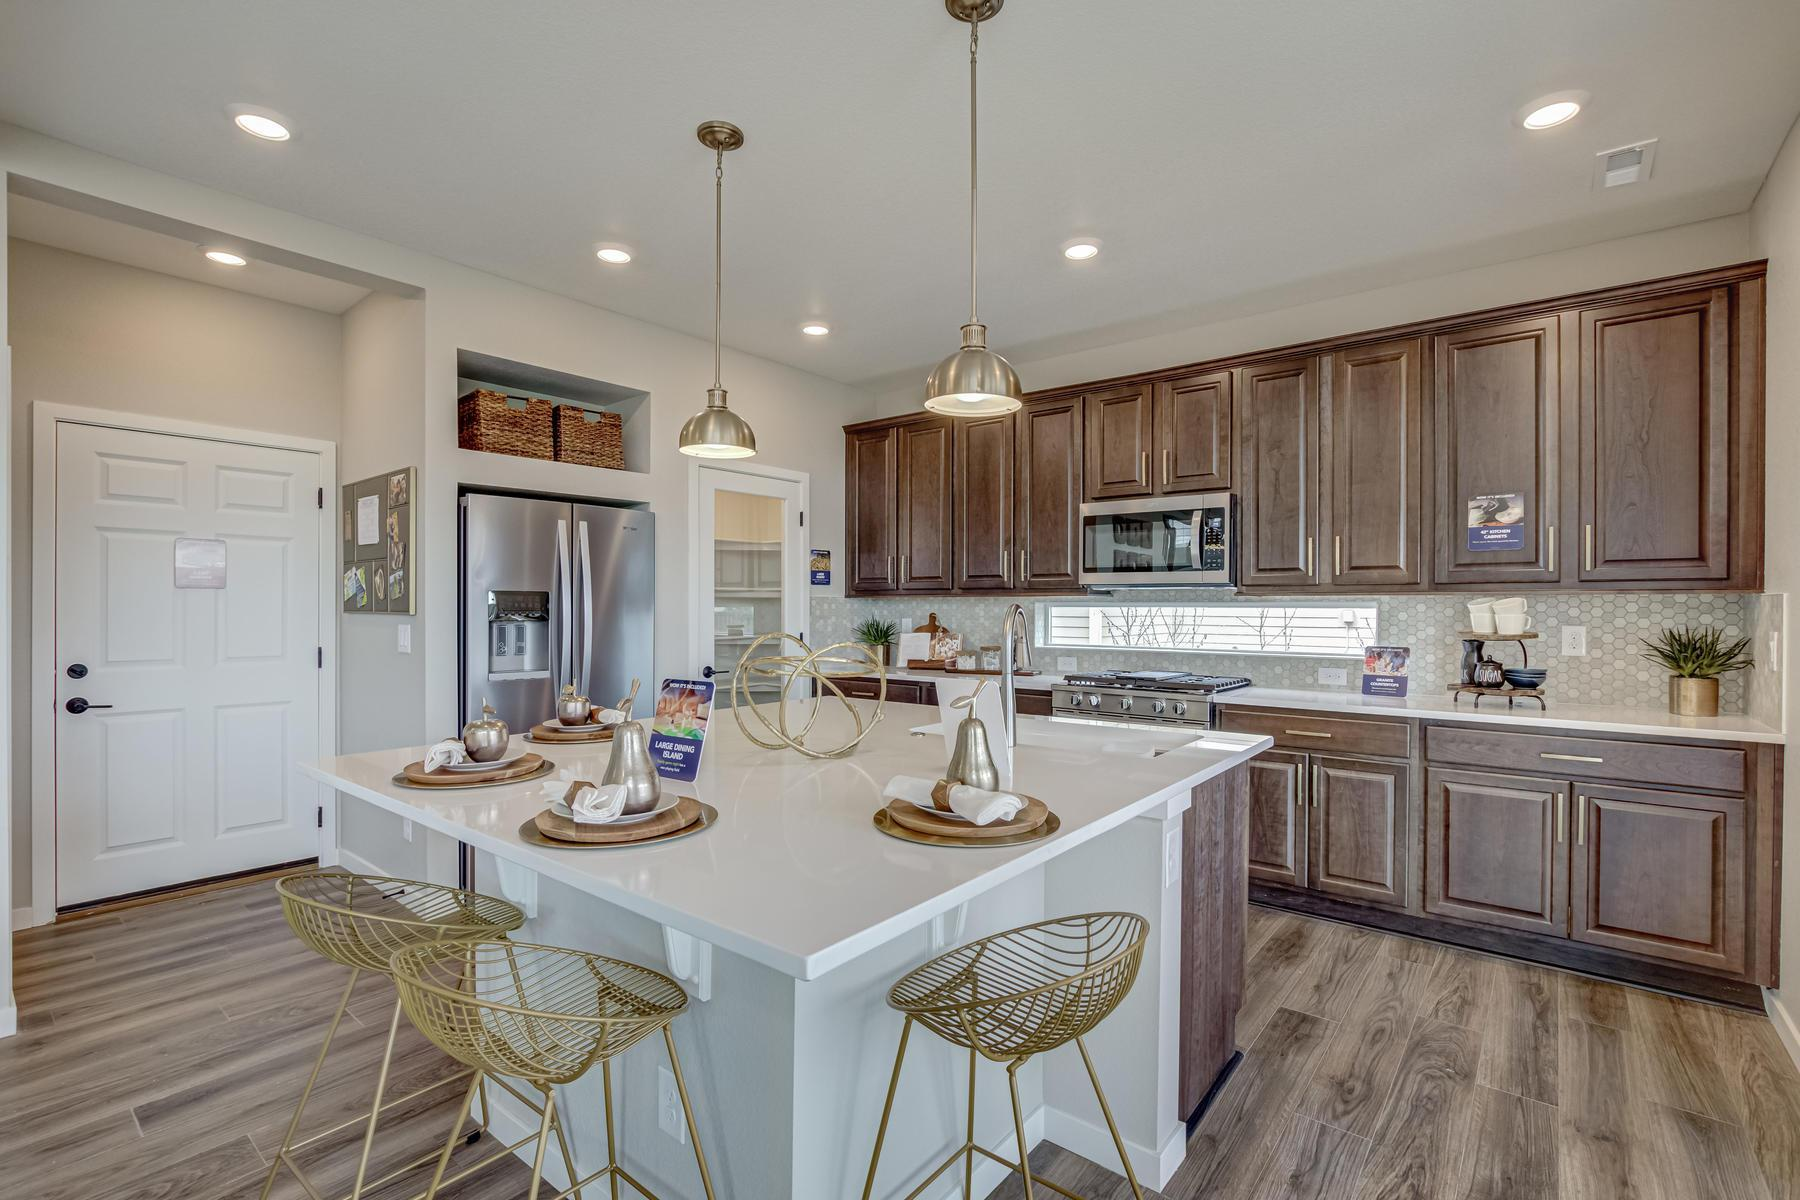 Kitchen featured in the BENNET By Oakwood Homes in Denver, CO